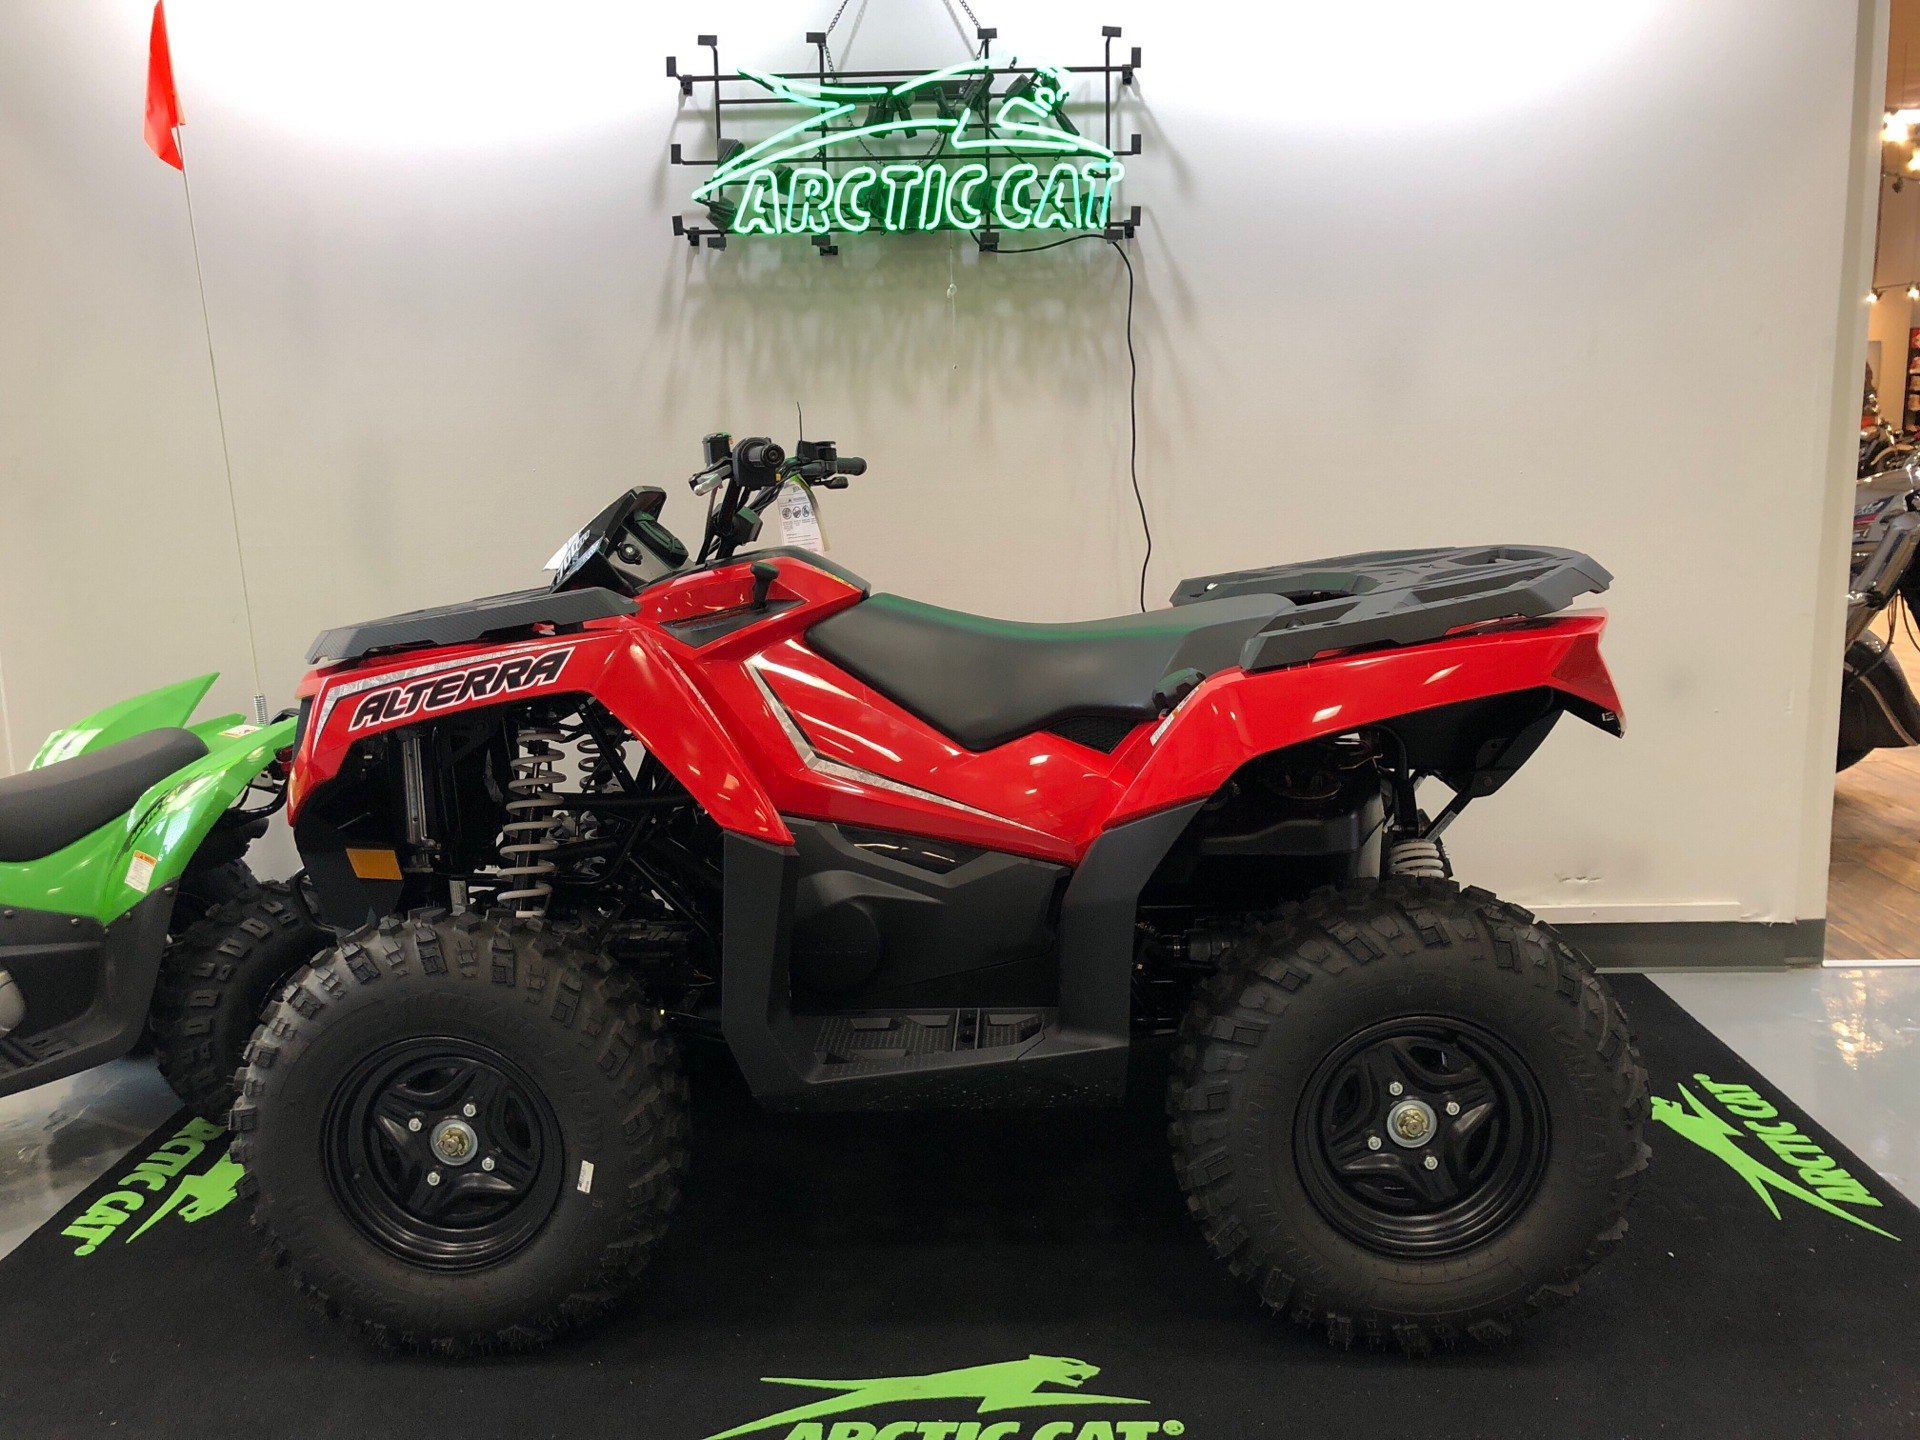 2017 Arctic Cat Alterra 700 In Savannah Georgia Photo 1